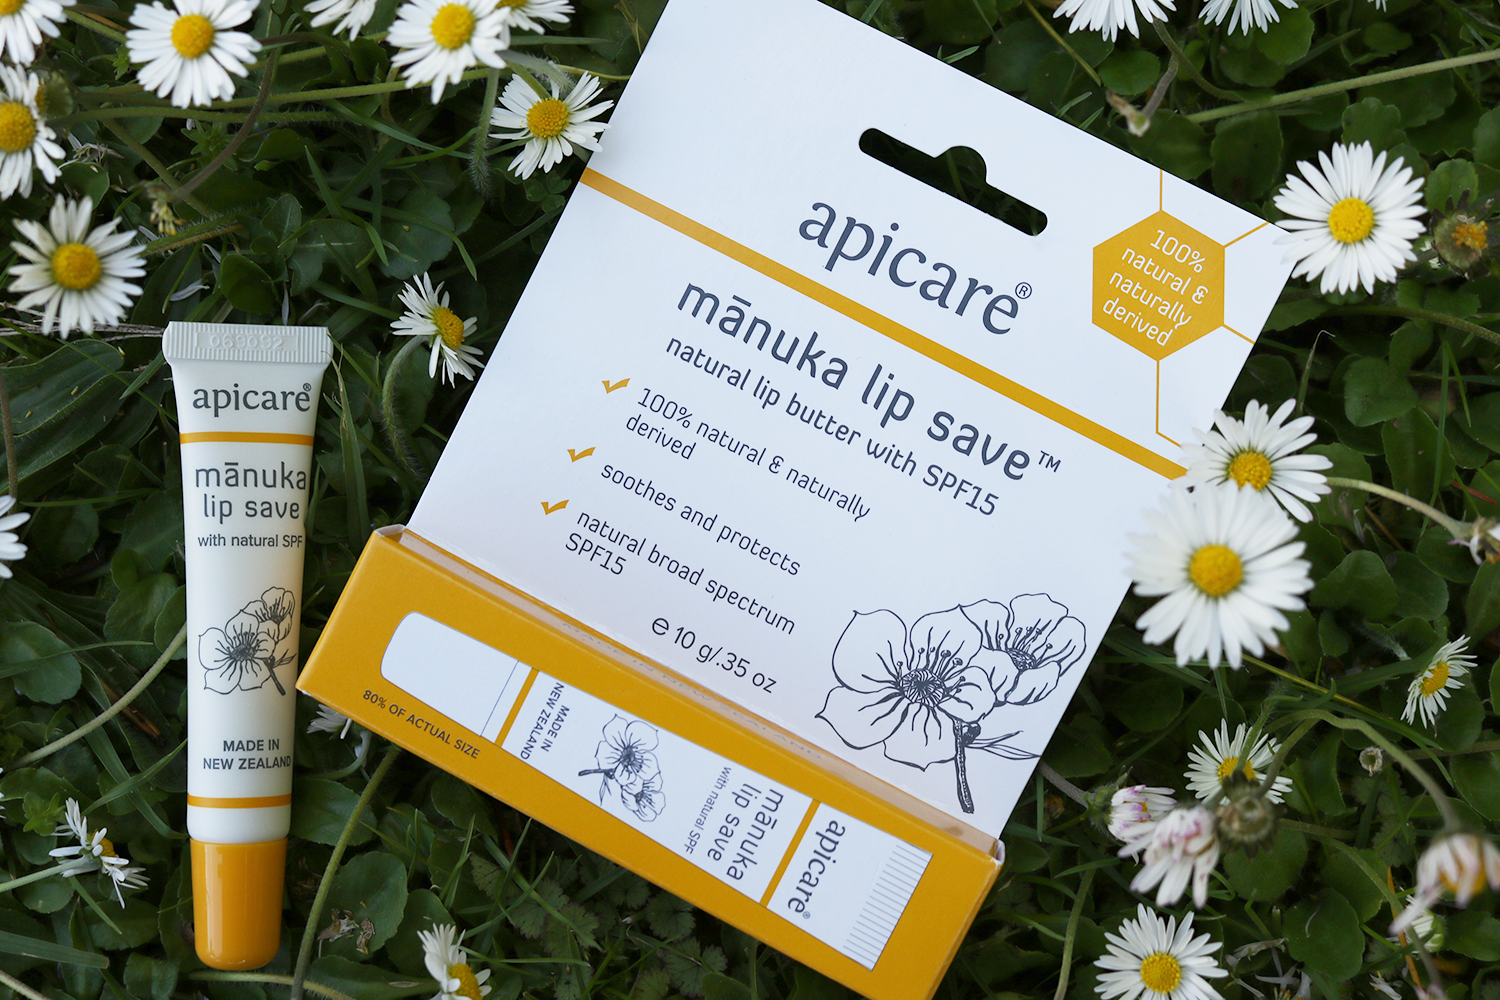 Apicare Manuka Box Website.png